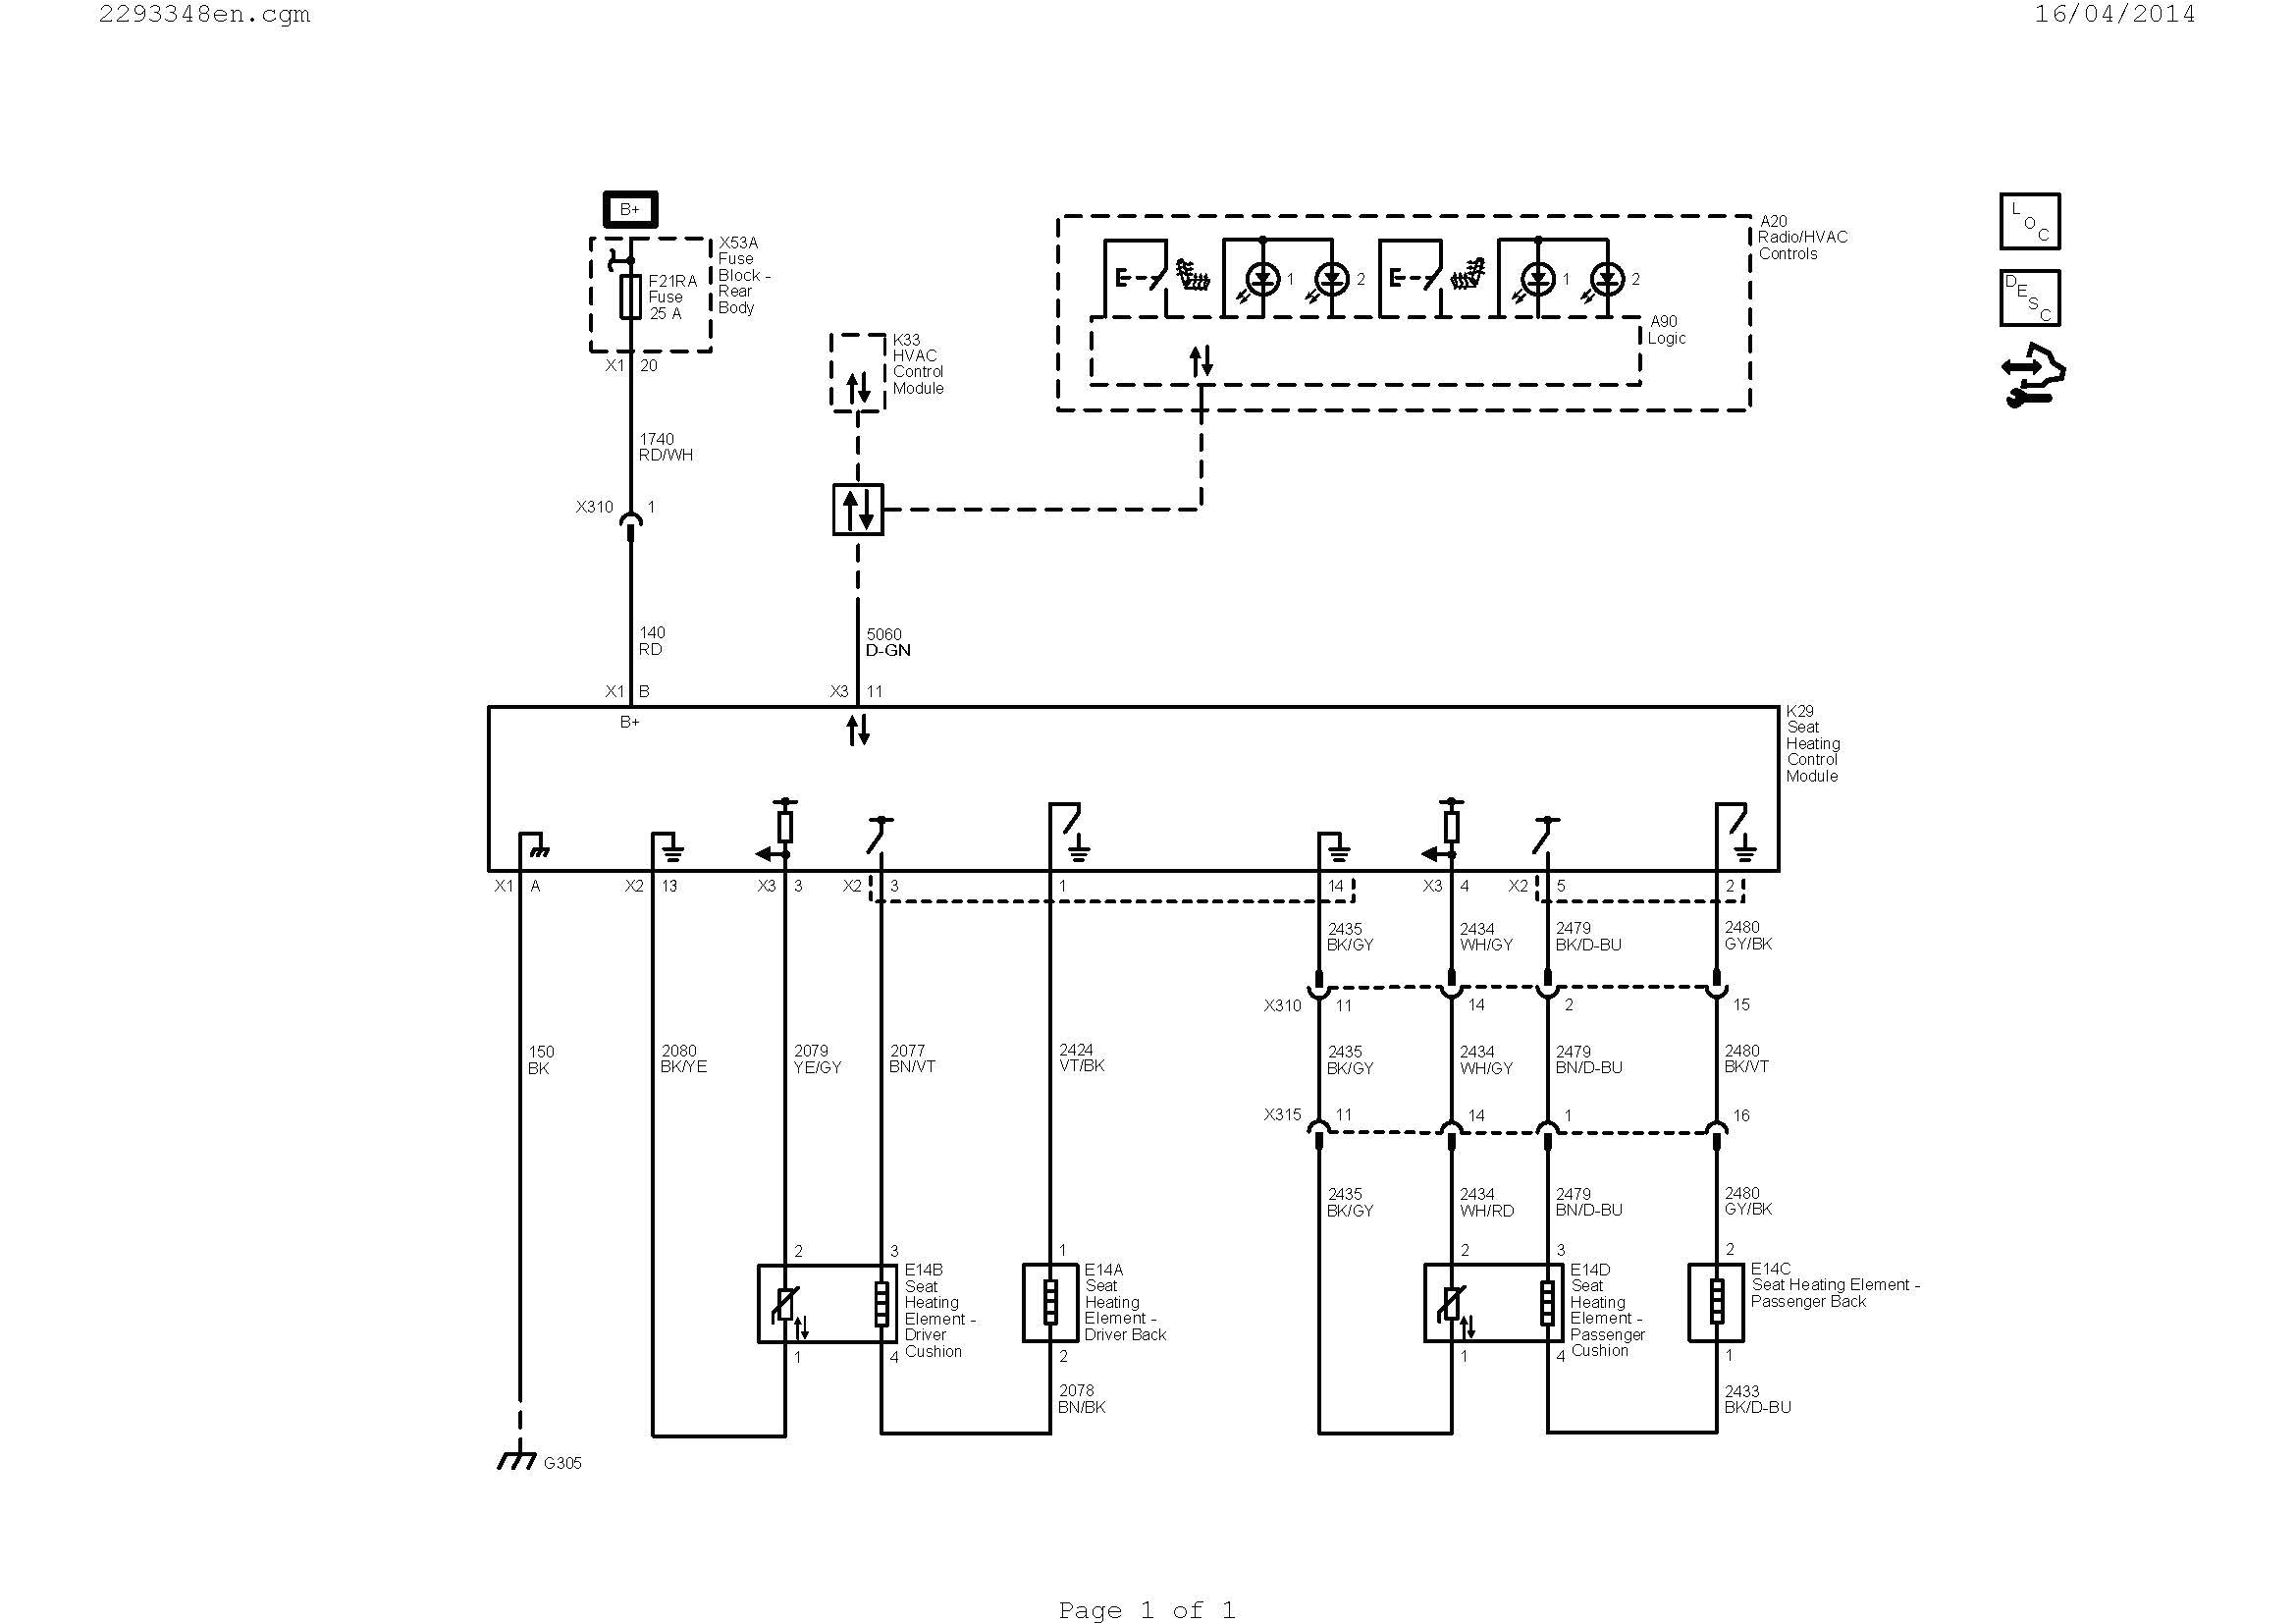 Furnace Wiring Diagram Wiring Diagram for thermostat to Furnace Sample